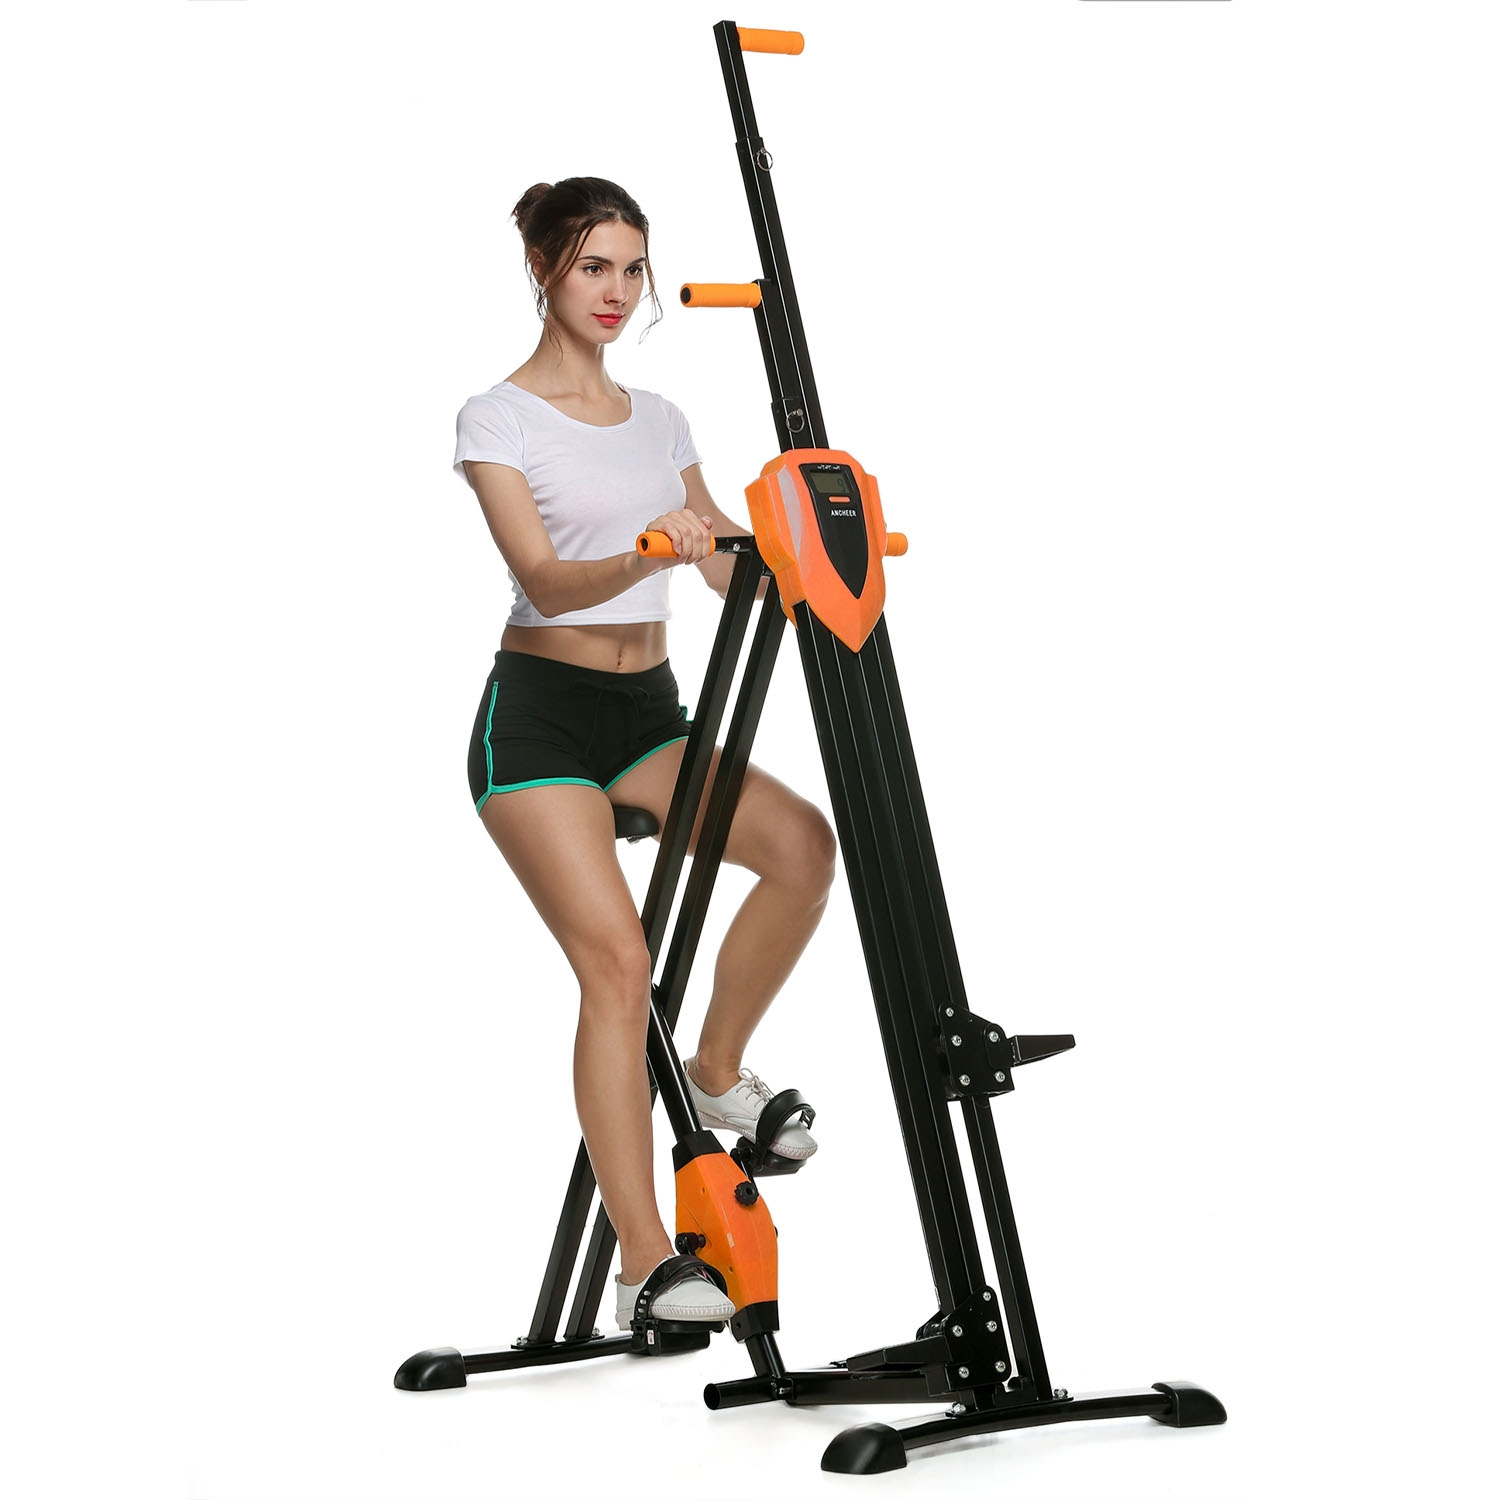 Kinbay Foldable Vertical Climber Total Body Workout - Home Gym Exercise Equipment! WCYE